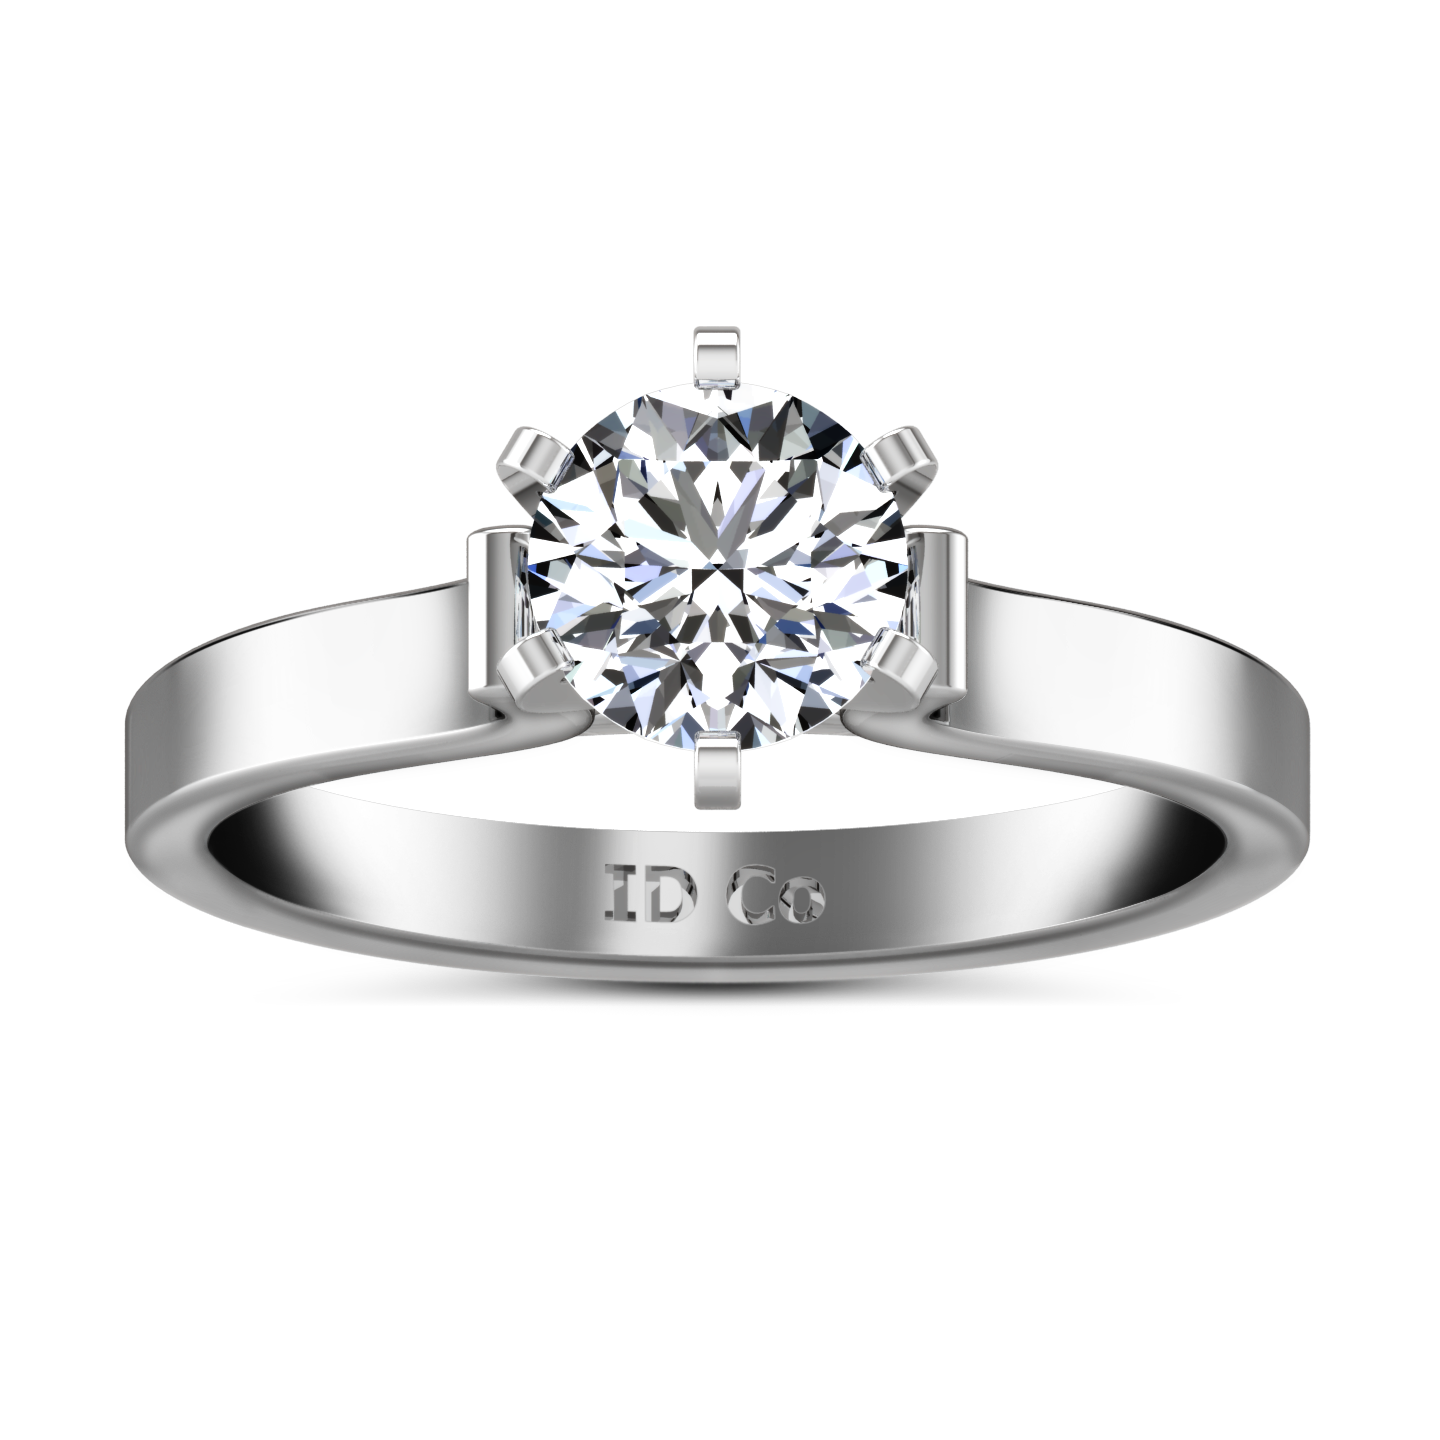 solitaire ct excellent diamond condition sz birks products cut engagement rings ring pear